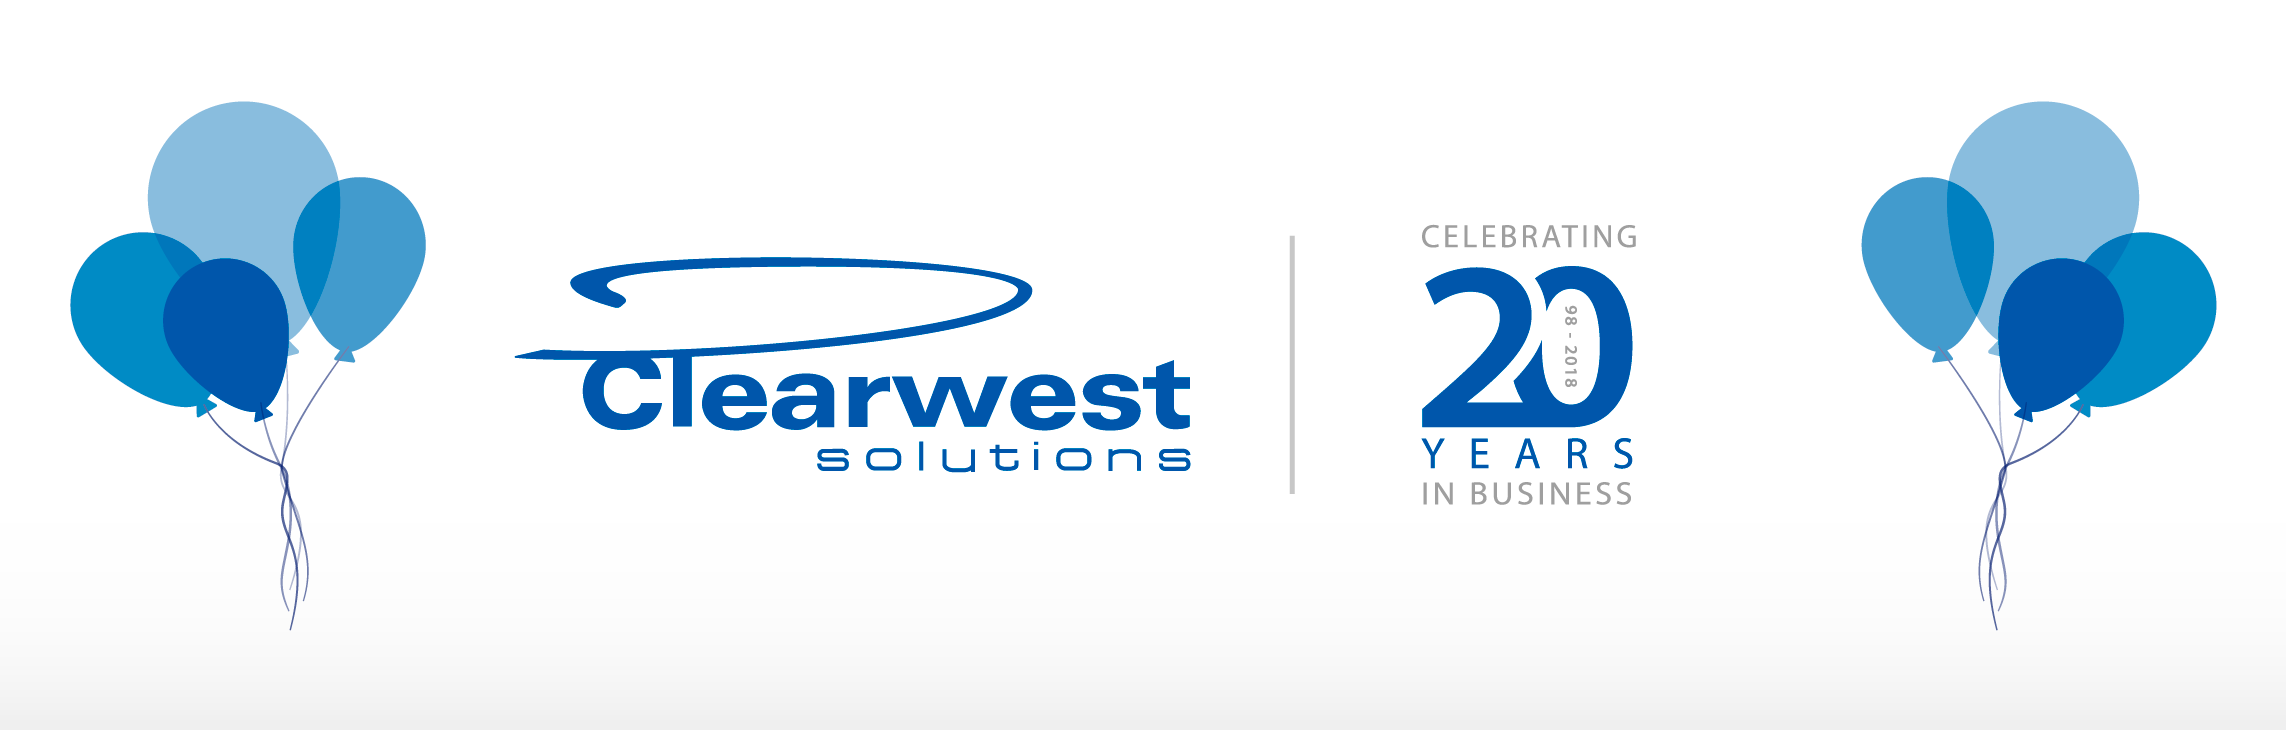 Clearwest 20th Anniversary